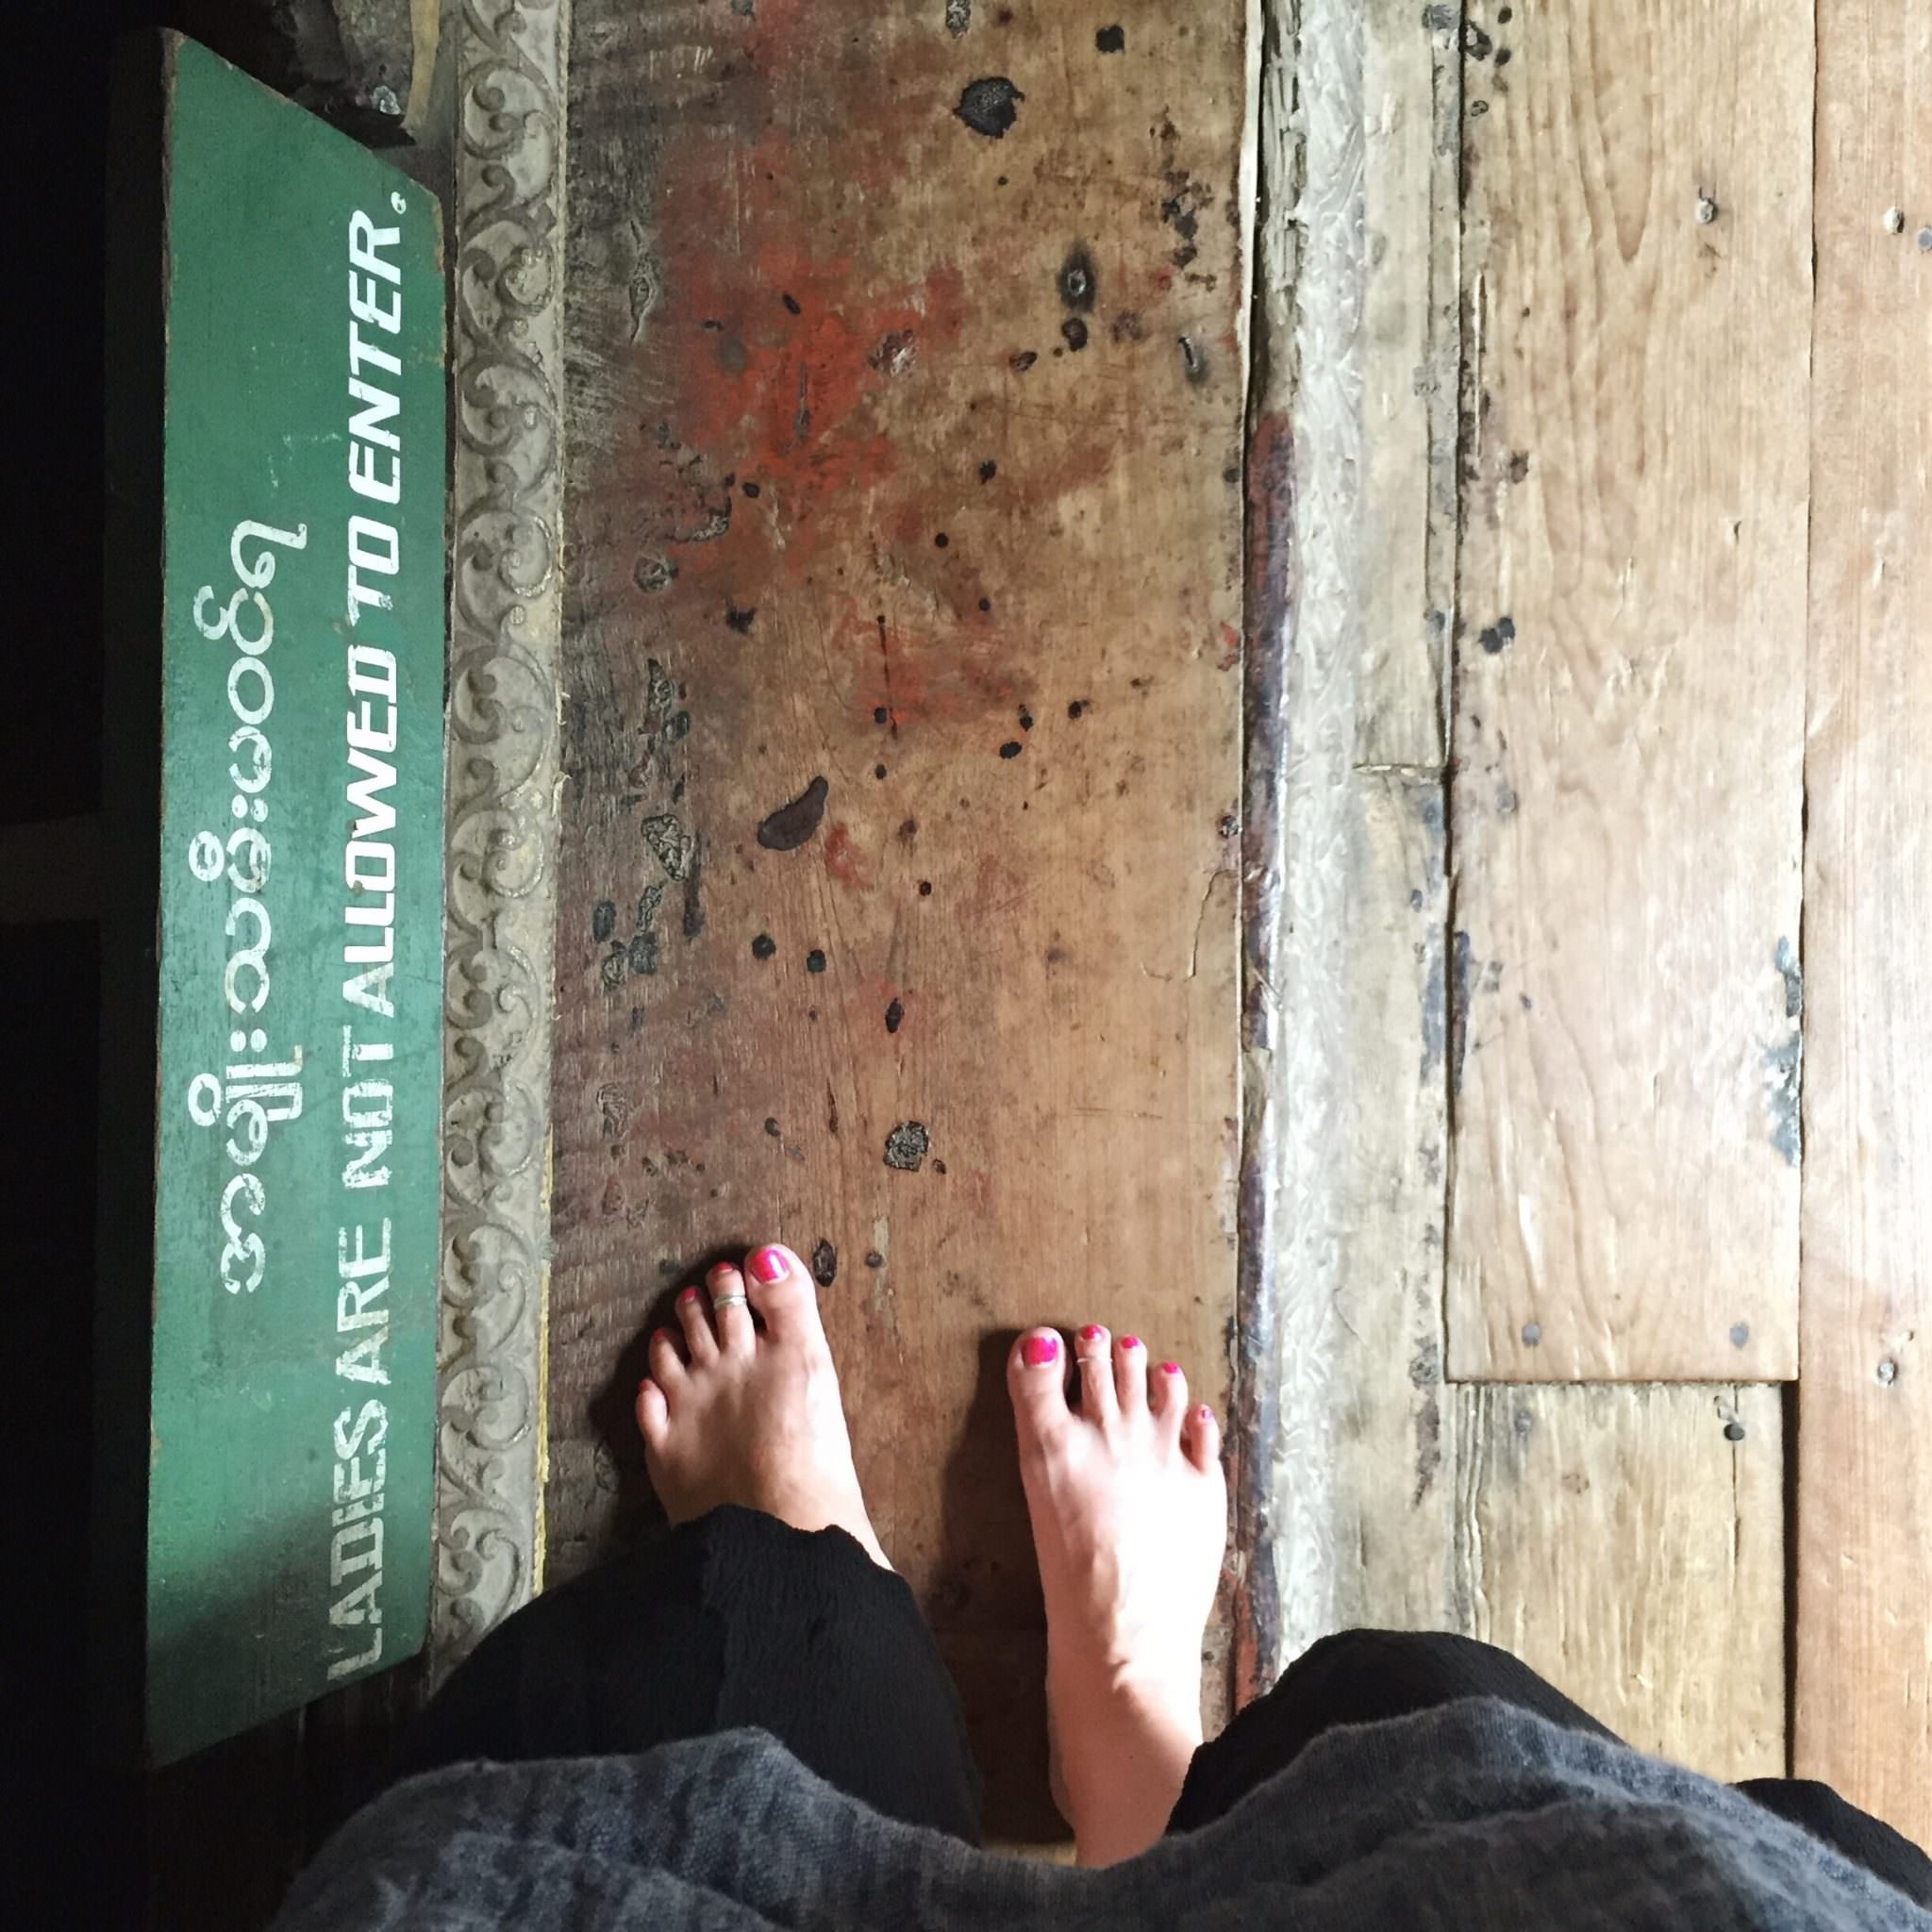 I'm not invited into the chamber containing the Buddha. In some of the pagodas we visited, women who are menstruating aren't allowed on the property at all. © 2015 Gail Jessen